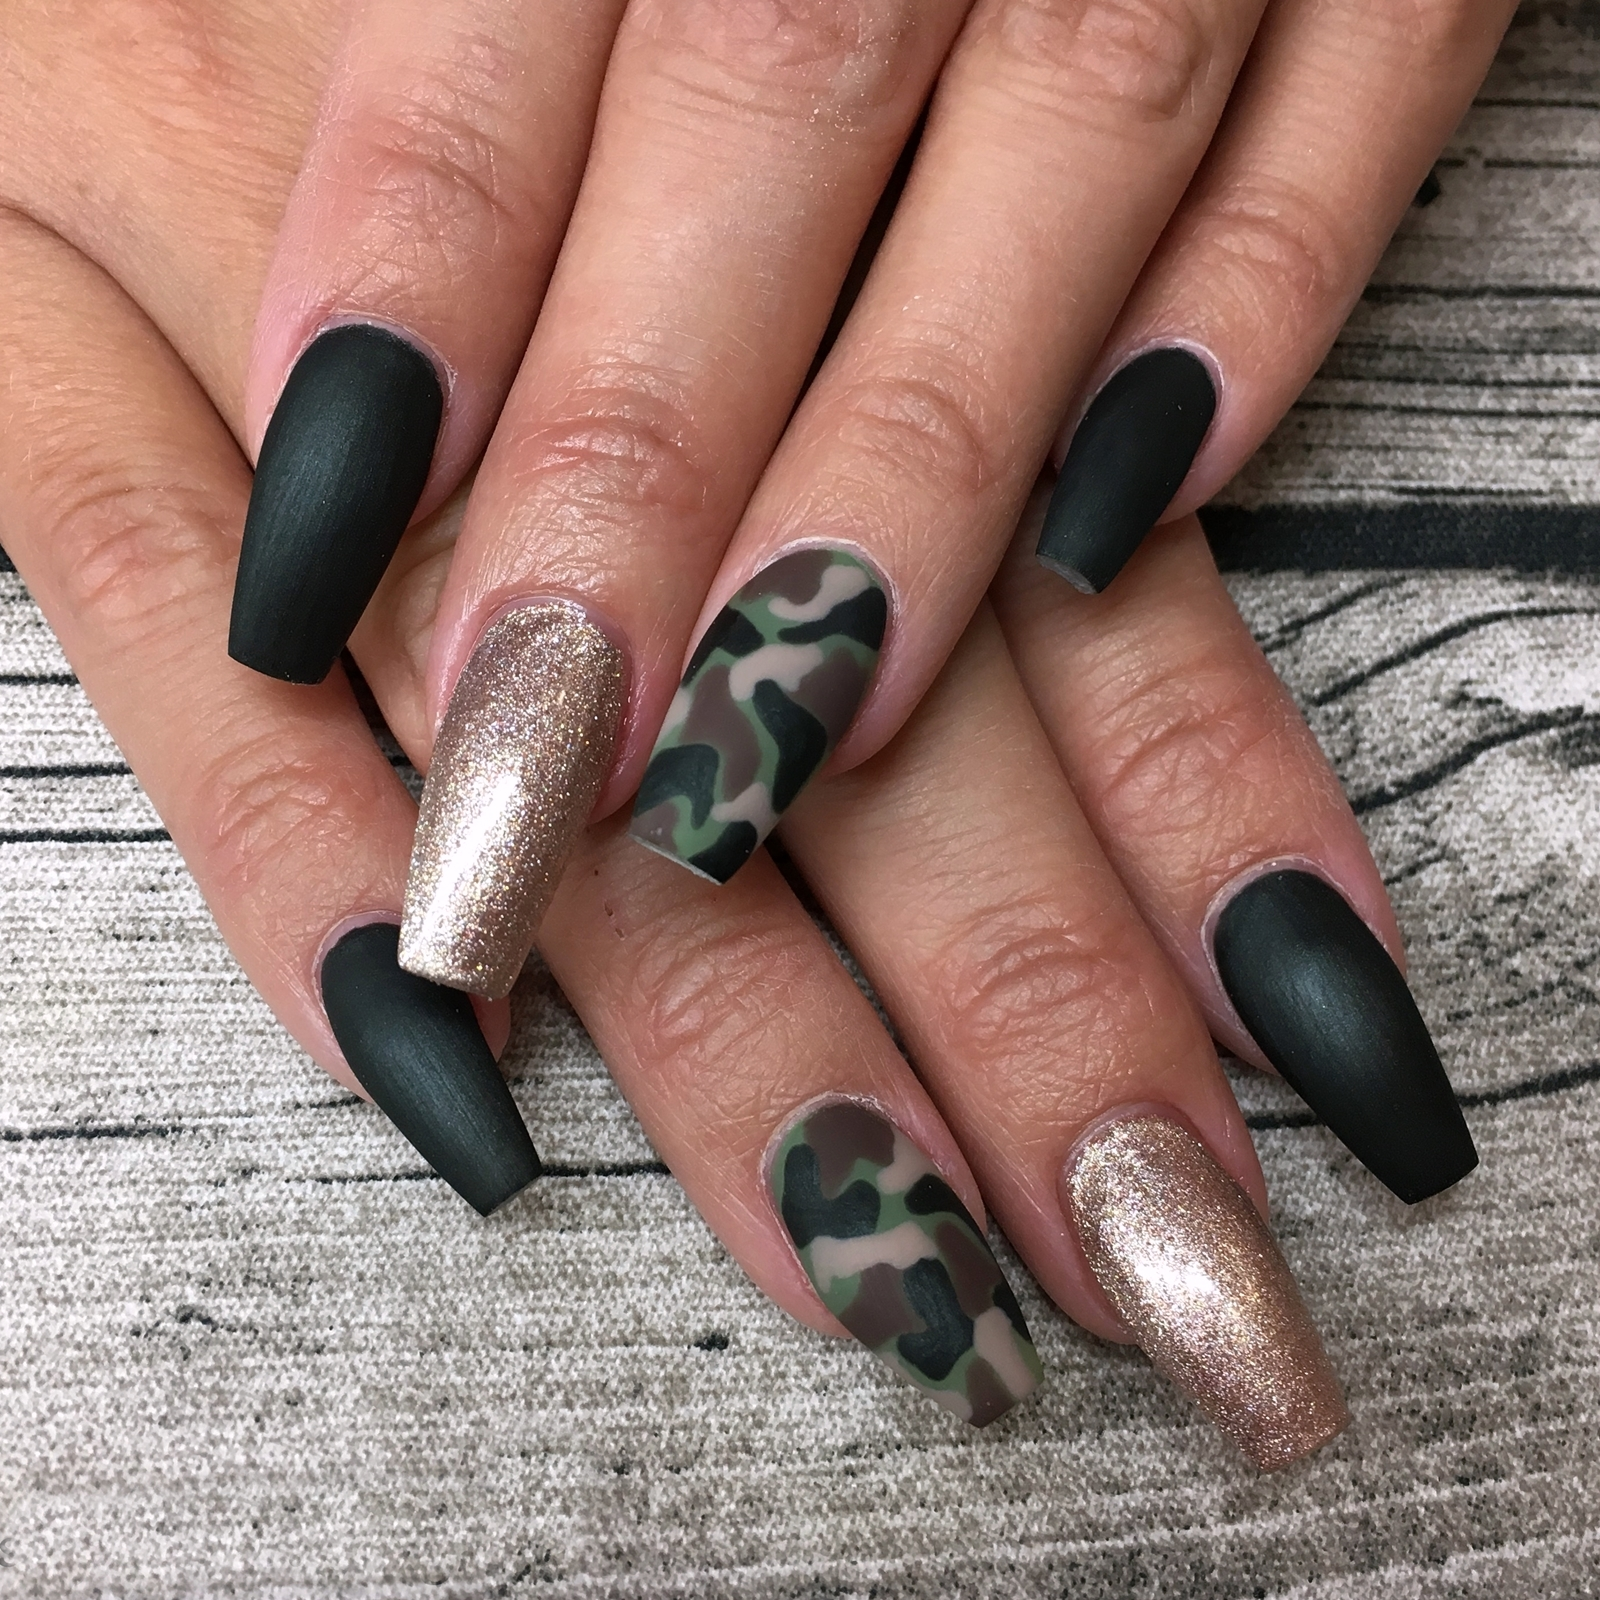 nail art inspiration camouflage nails matt versiegelt matte n gel nageldesign nailart. Black Bedroom Furniture Sets. Home Design Ideas